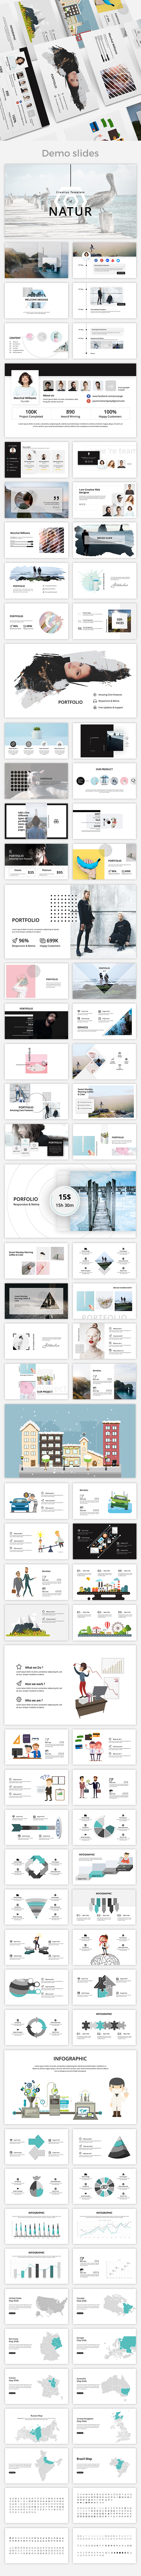 GraphicRiver Natur Creative Powerpoint Template 20968029